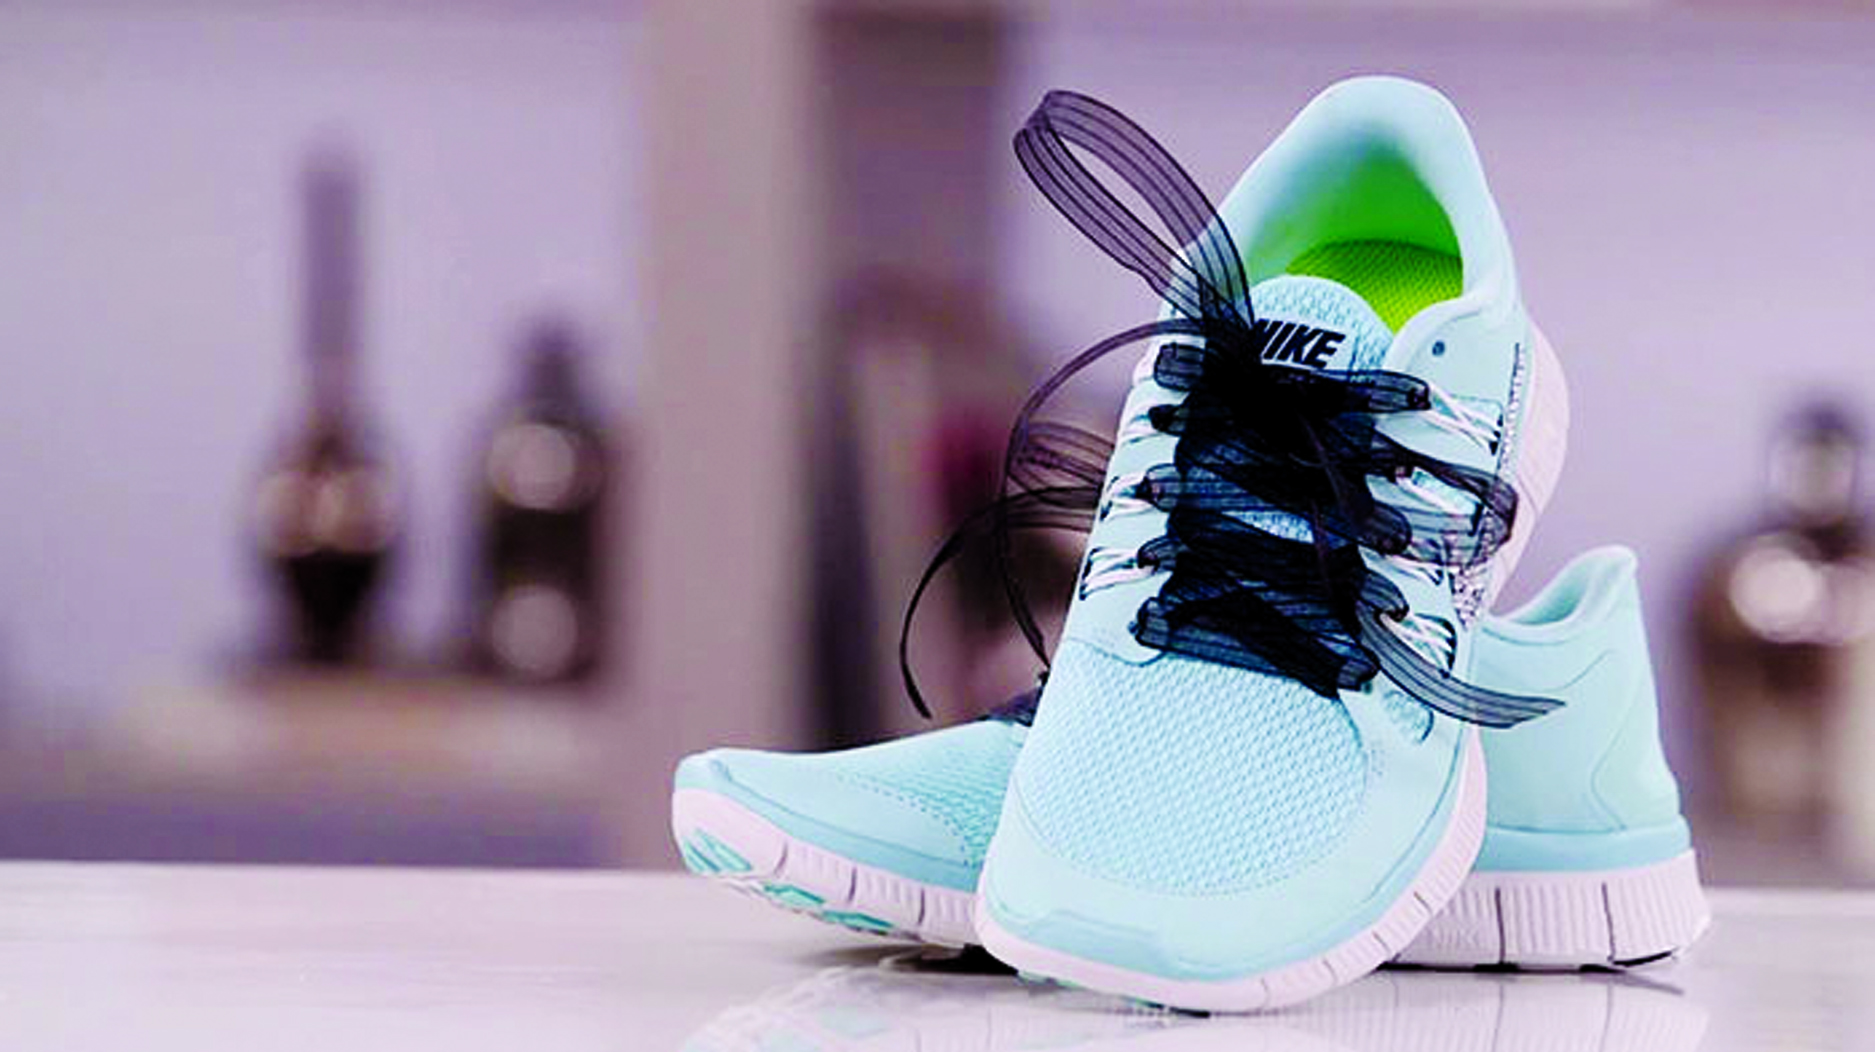 Give your old  sneakers  a pretty makeover